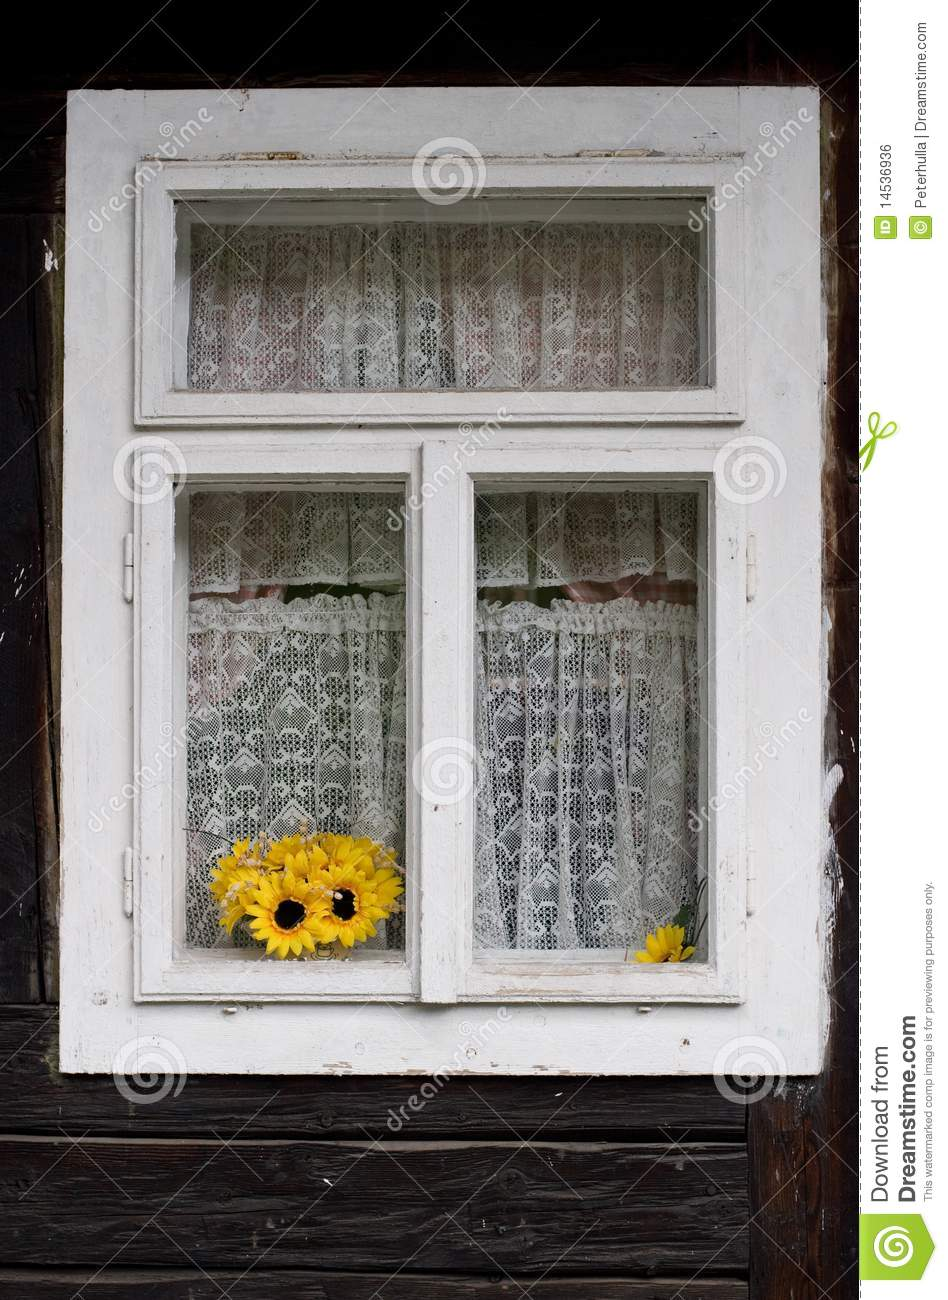 Download Yellow Sunflowers In A Window Stock Photo - Image of holiday, vintage: 14536936